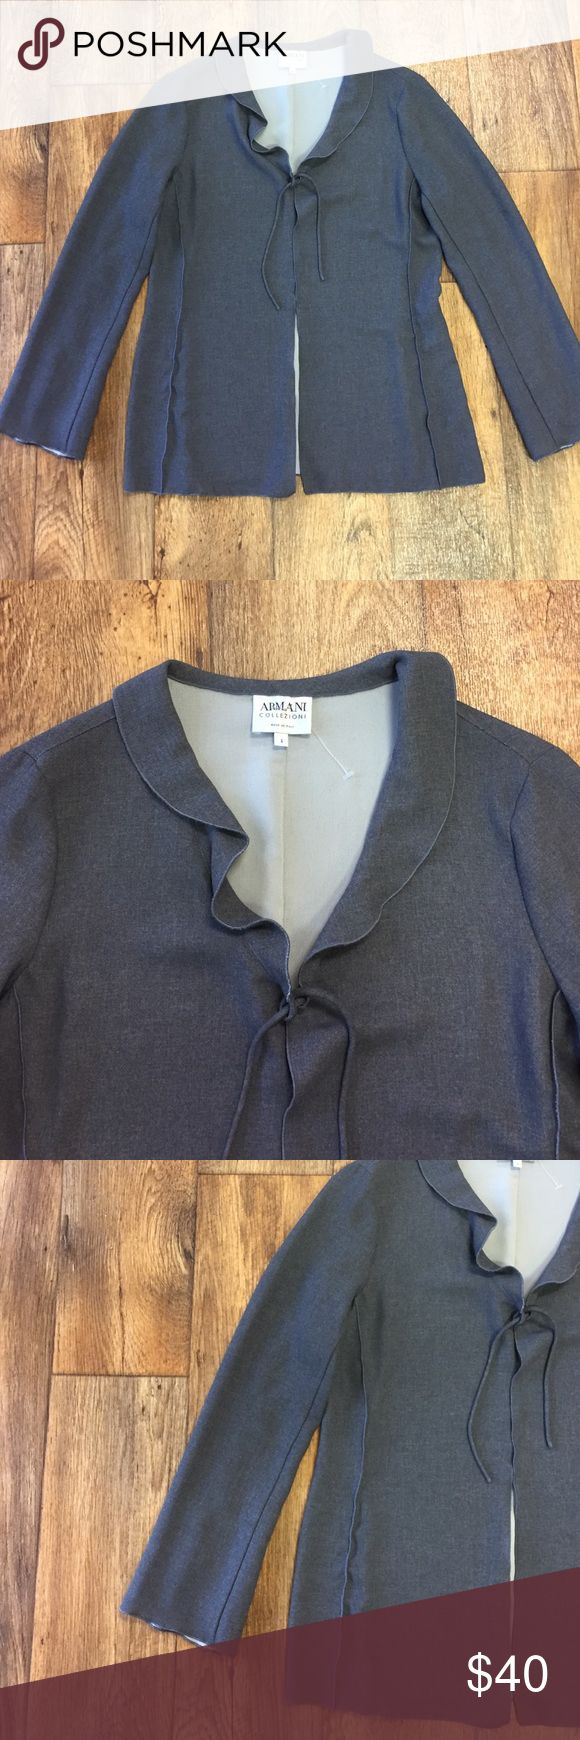 Armani Gray Open Cardigan Just cleaned! In perfect condition! Armani Collezioni Sweaters Cardigans